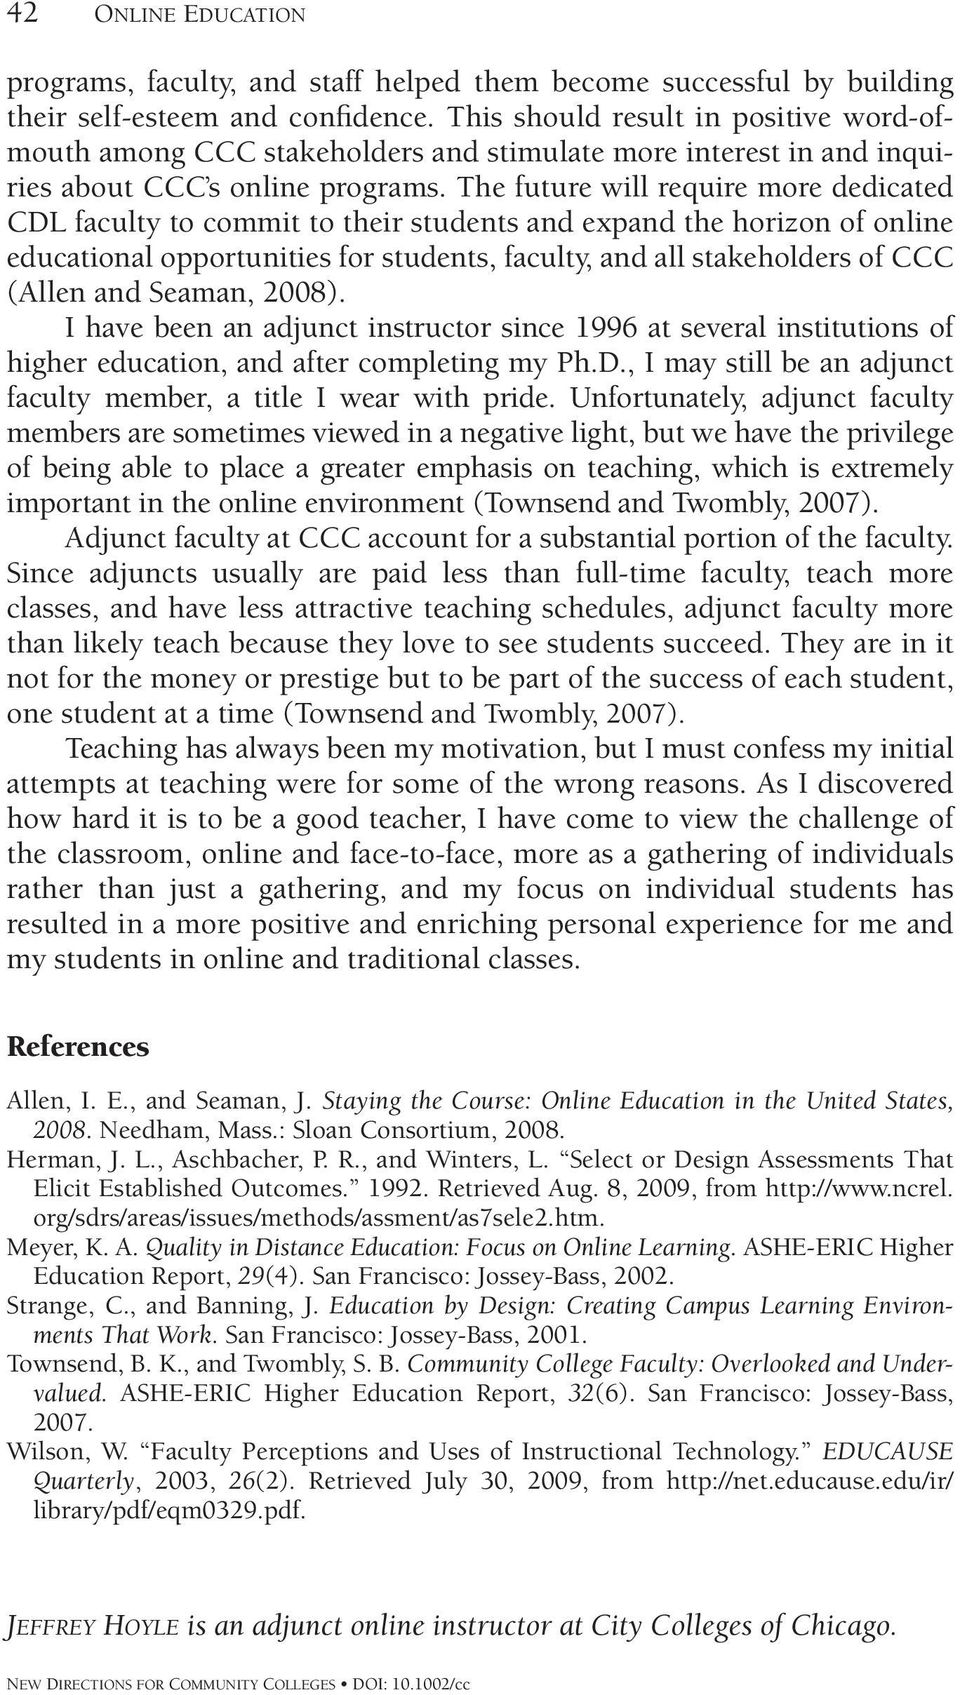 The future will require more dedicated CDL faculty to commit to their students and expand the horizon of online educational opportunities for students, faculty, and all stakeholders of CCC (Allen and